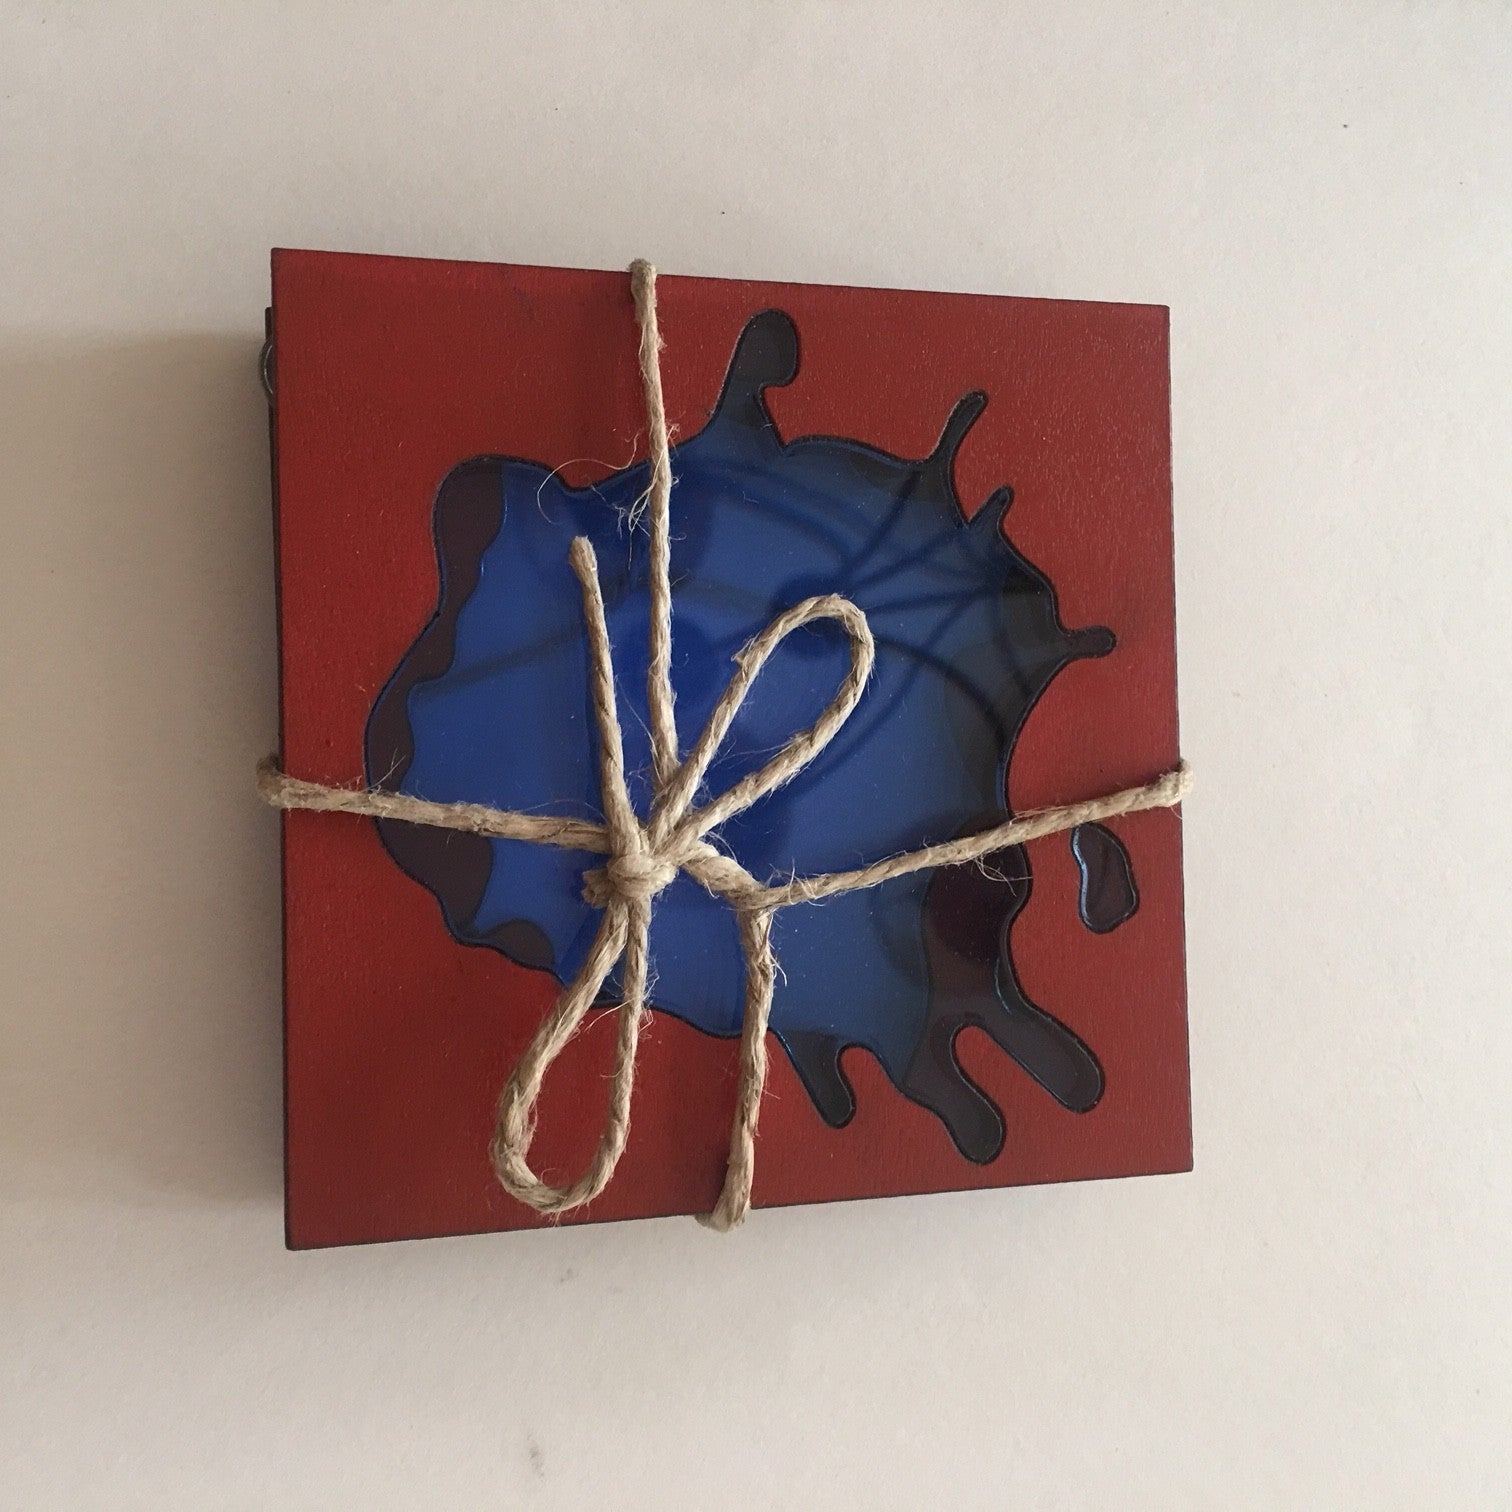 set of 3 red wood and blue acrylic coasters